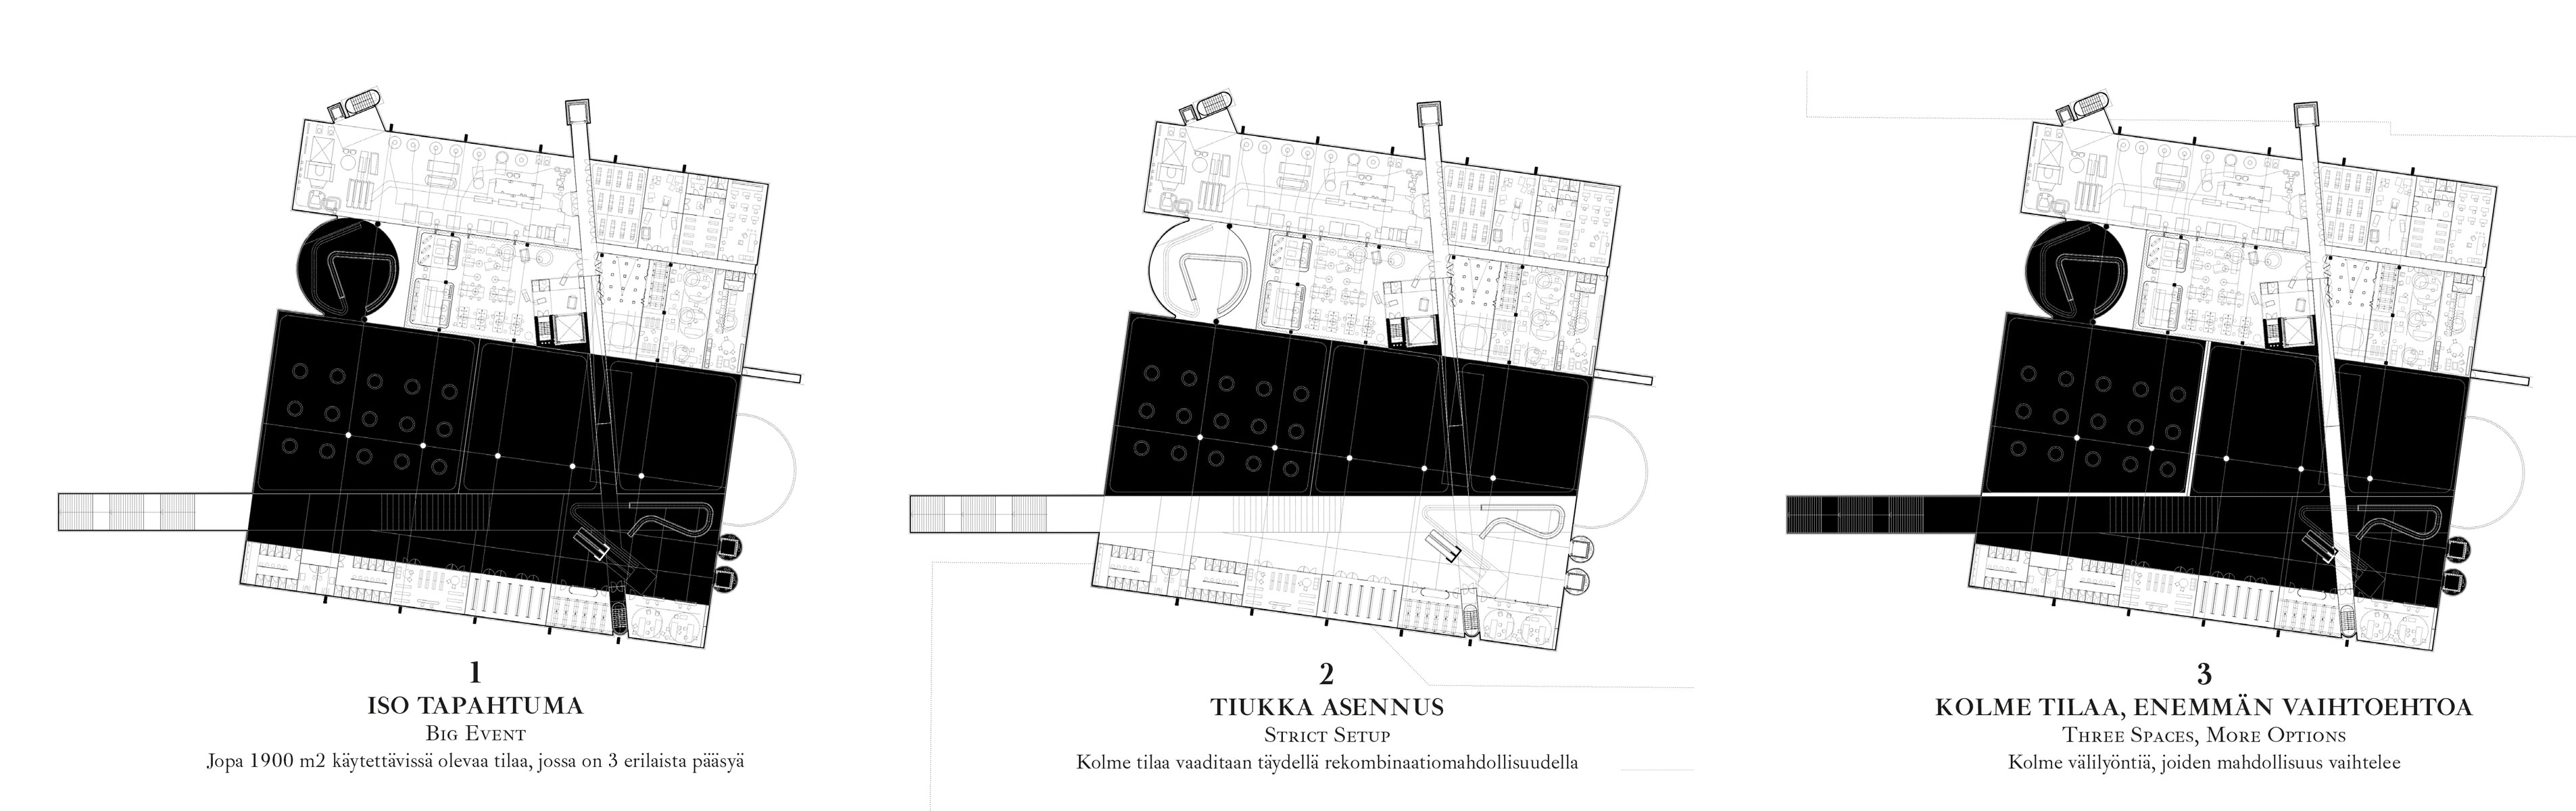 New National Pedro Pitarch New National Museum Finland Schemes